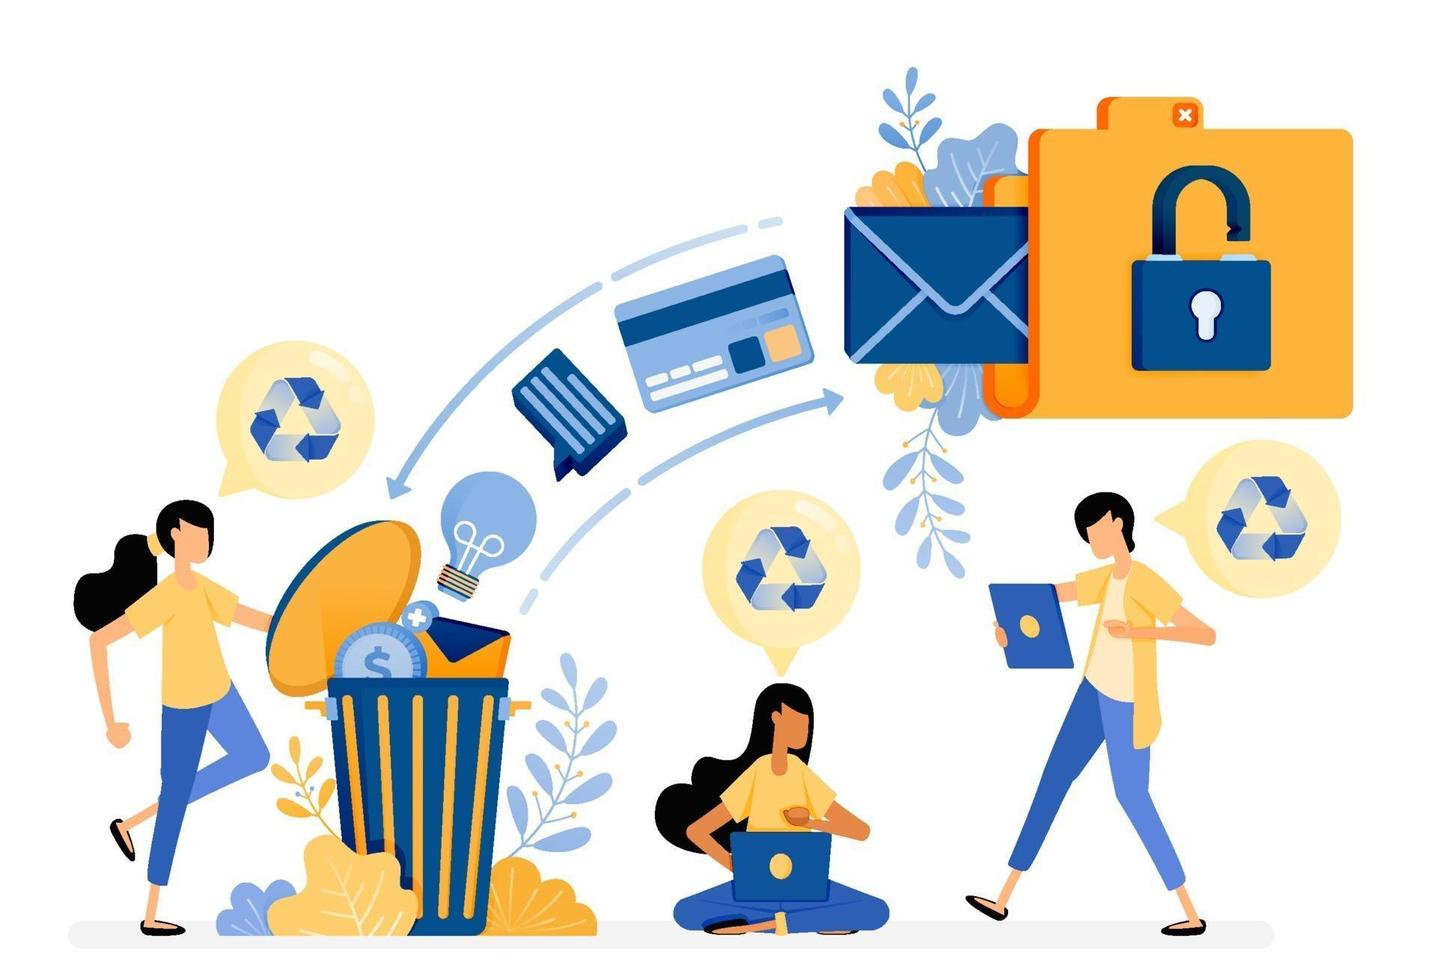 Banner vector design of wasting archive data into recycle bin with protection and security system. Illustration concept be used for landing page, template, ui, web, mobile app, poster, banner, website